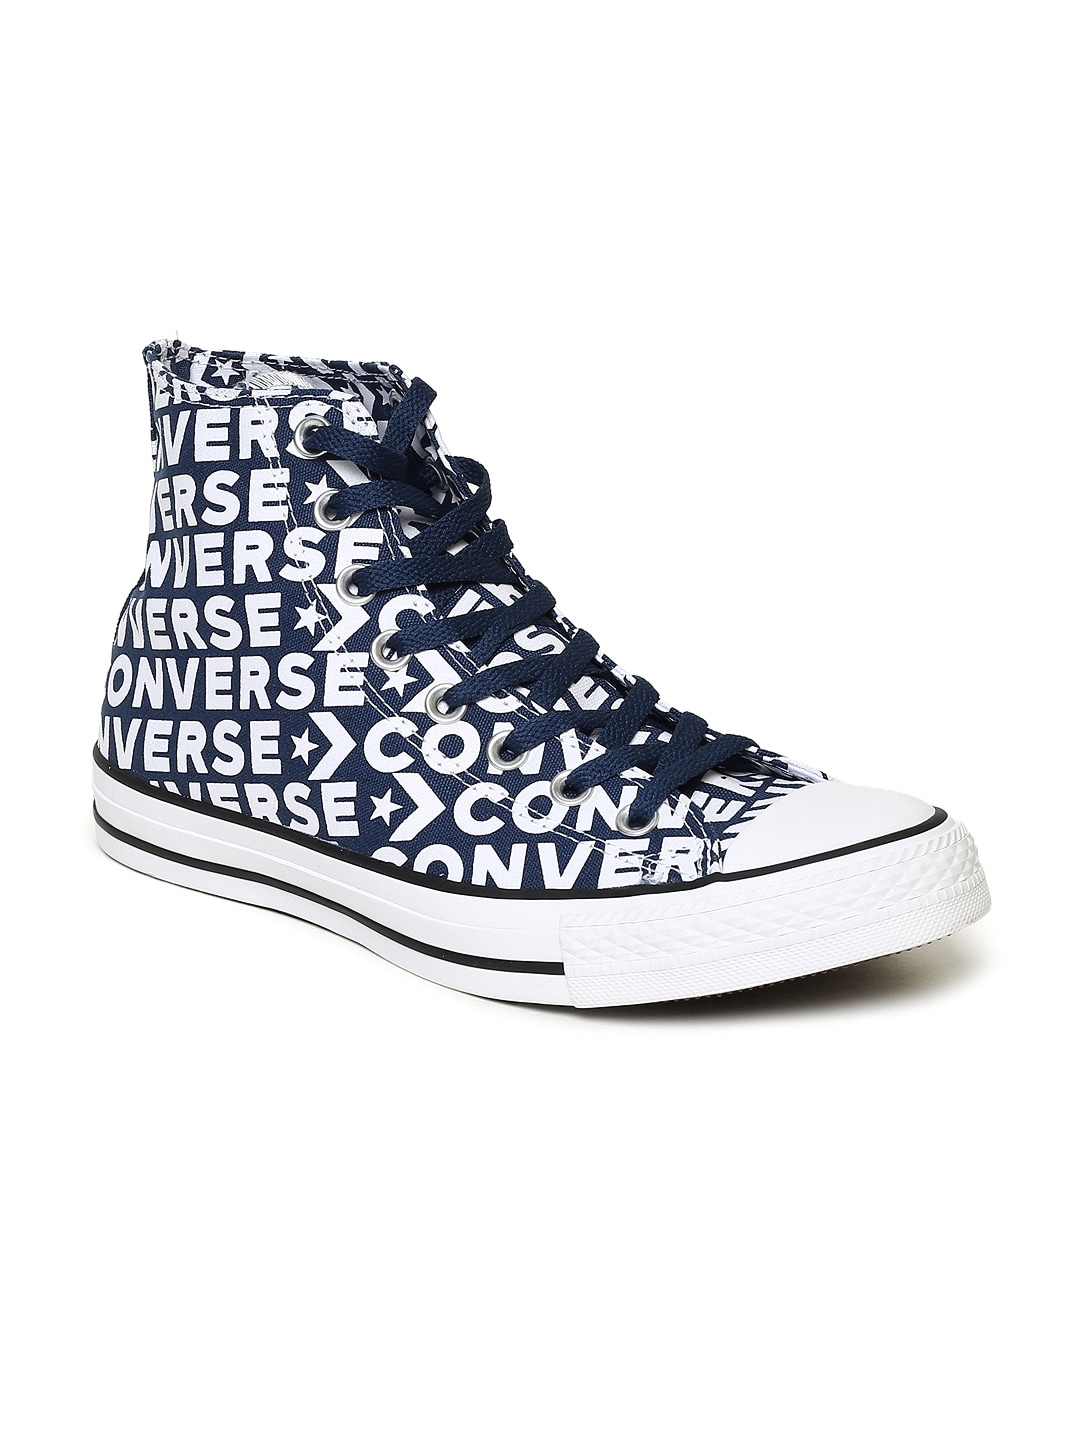 6dcc8875a81 Converse Shoes - Buy Converse Canvas Shoes   Sneakers Online